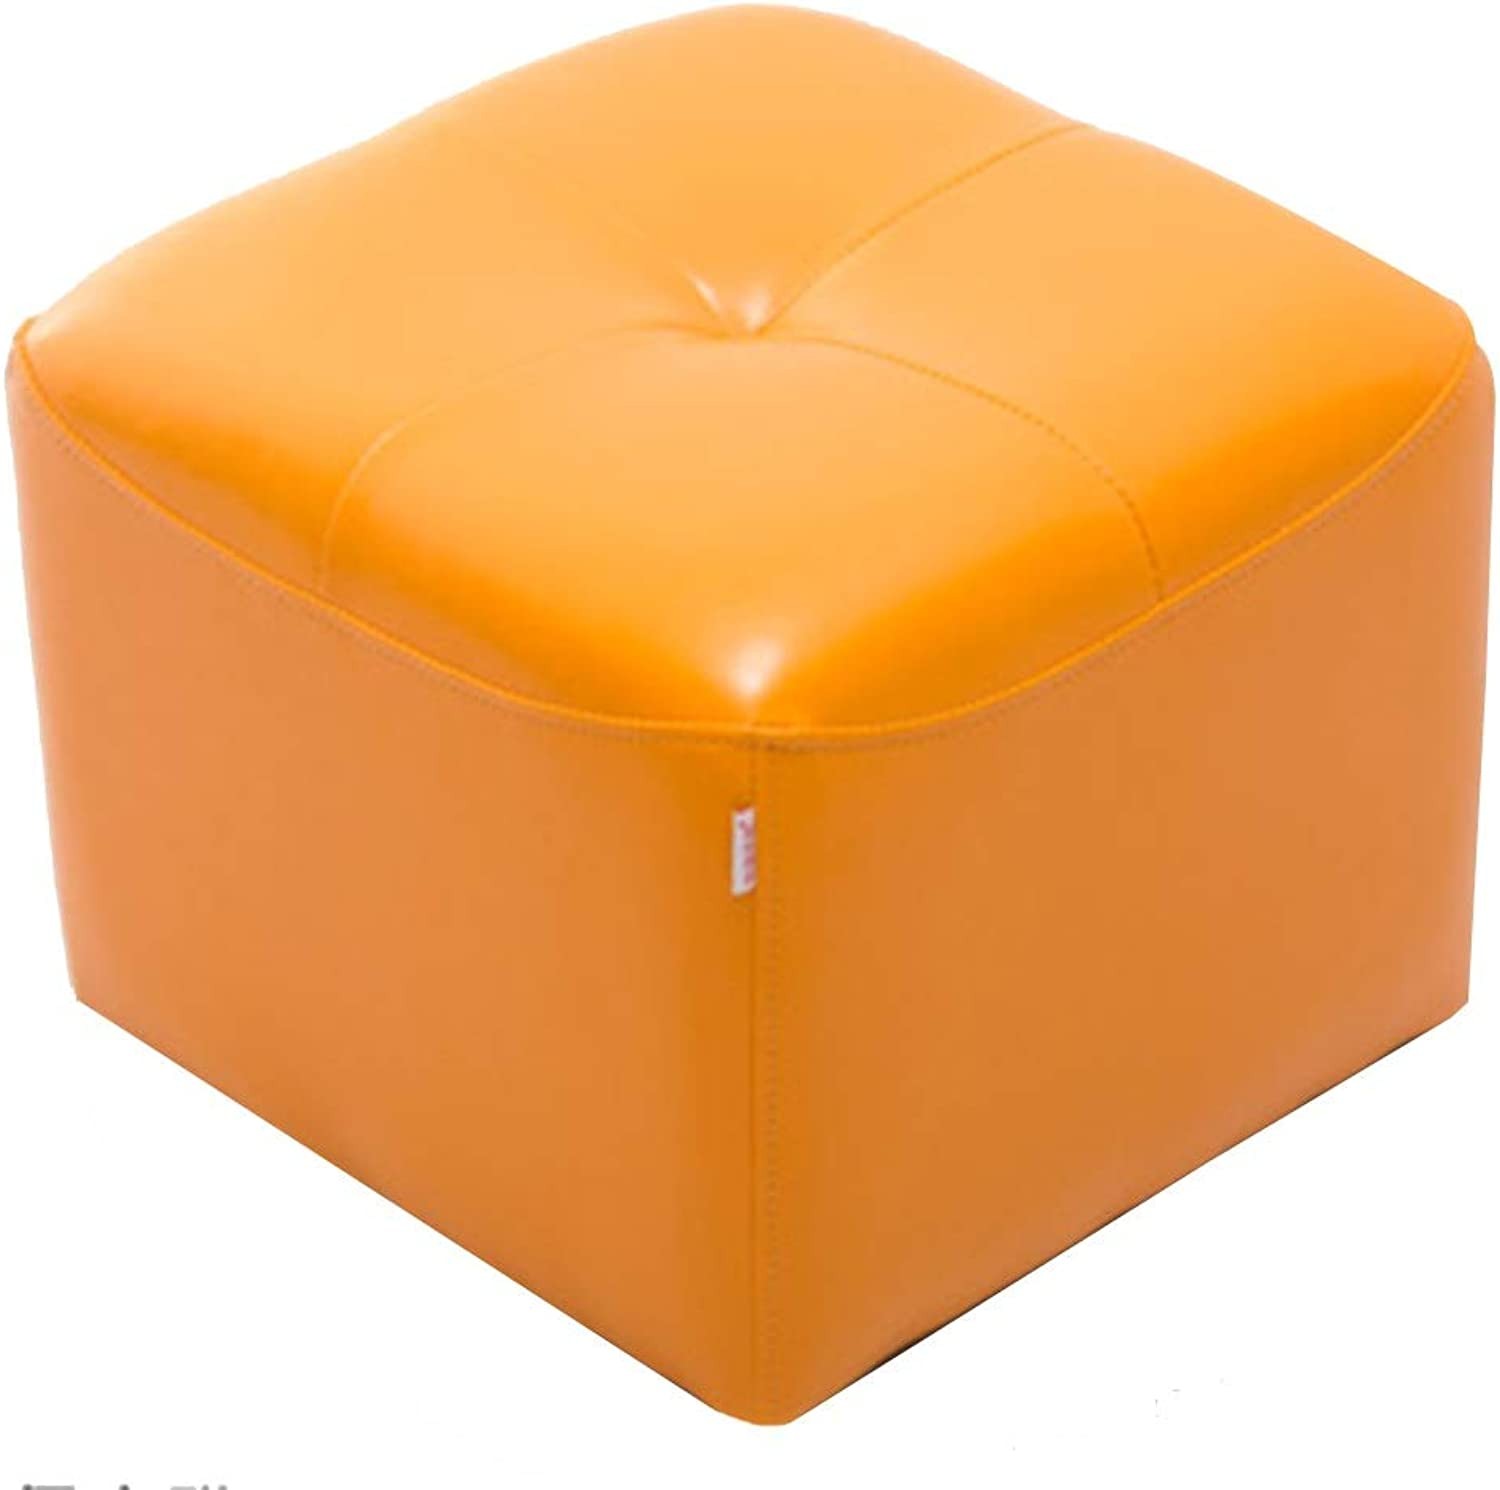 LSXIAO Sofa Stool Square Structure Stable PU Comfortable Clothing Store Change shoes Stylish Simplicity, 7 colors (color   orange, Size   42x42x34cm)